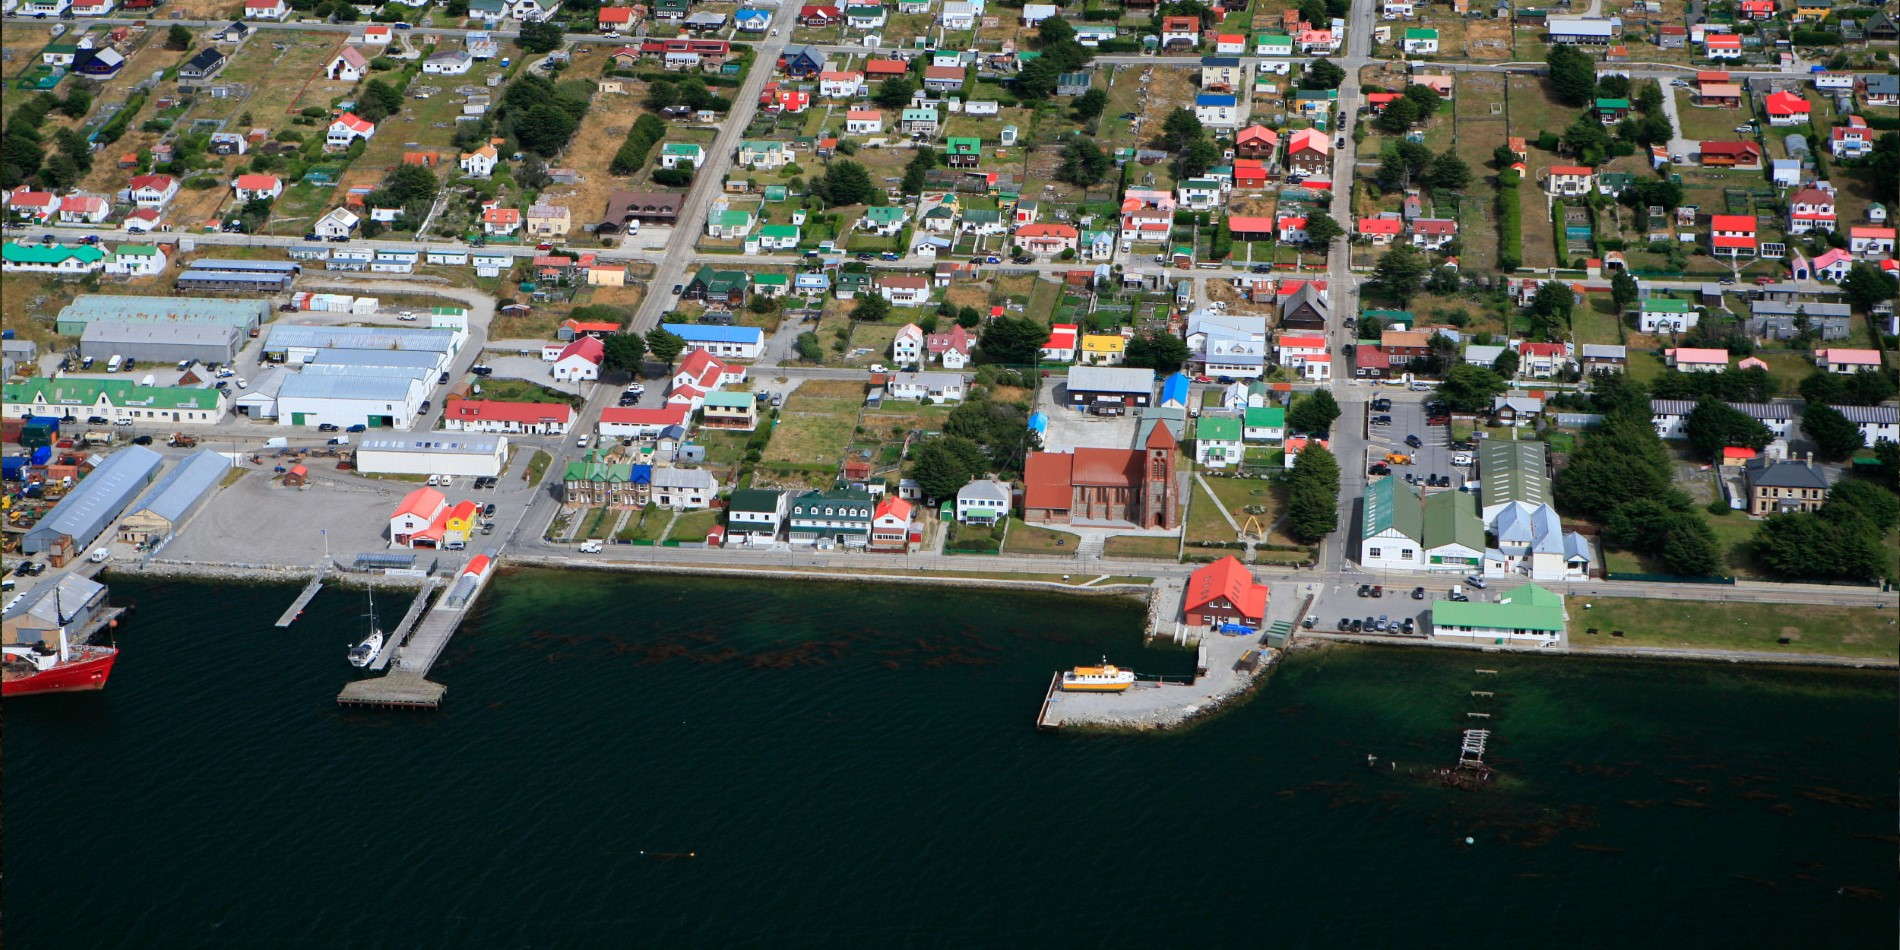 Aerial view of Port Stanley, the Falklands.